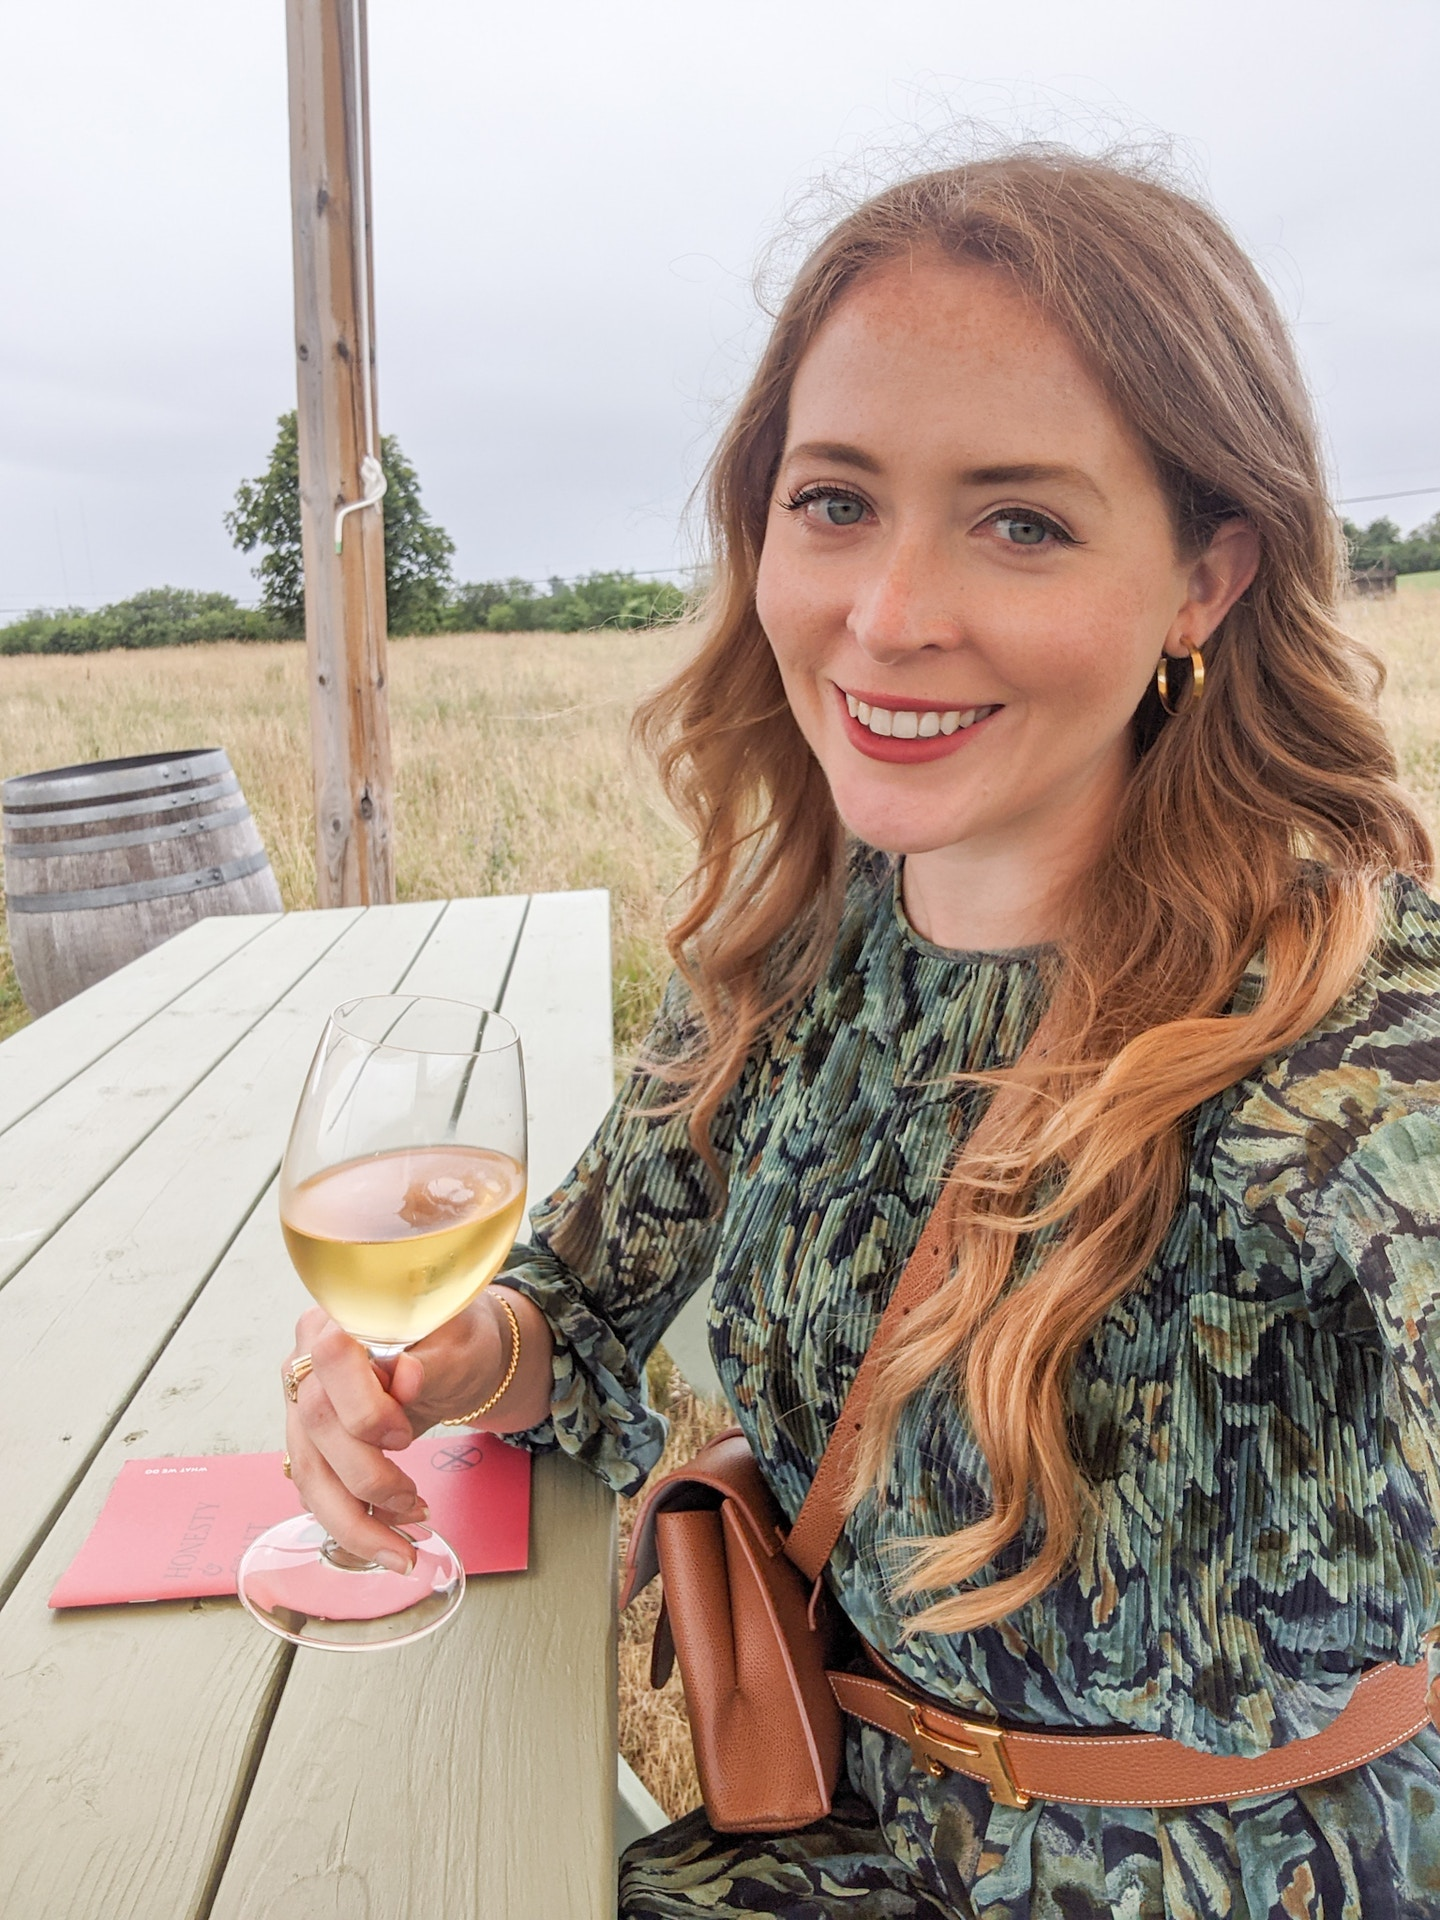 Trail Estate Winery was one of my top Prince Edward County wineries. Their 2017 Foxcroft Chardonnay was impeccable.